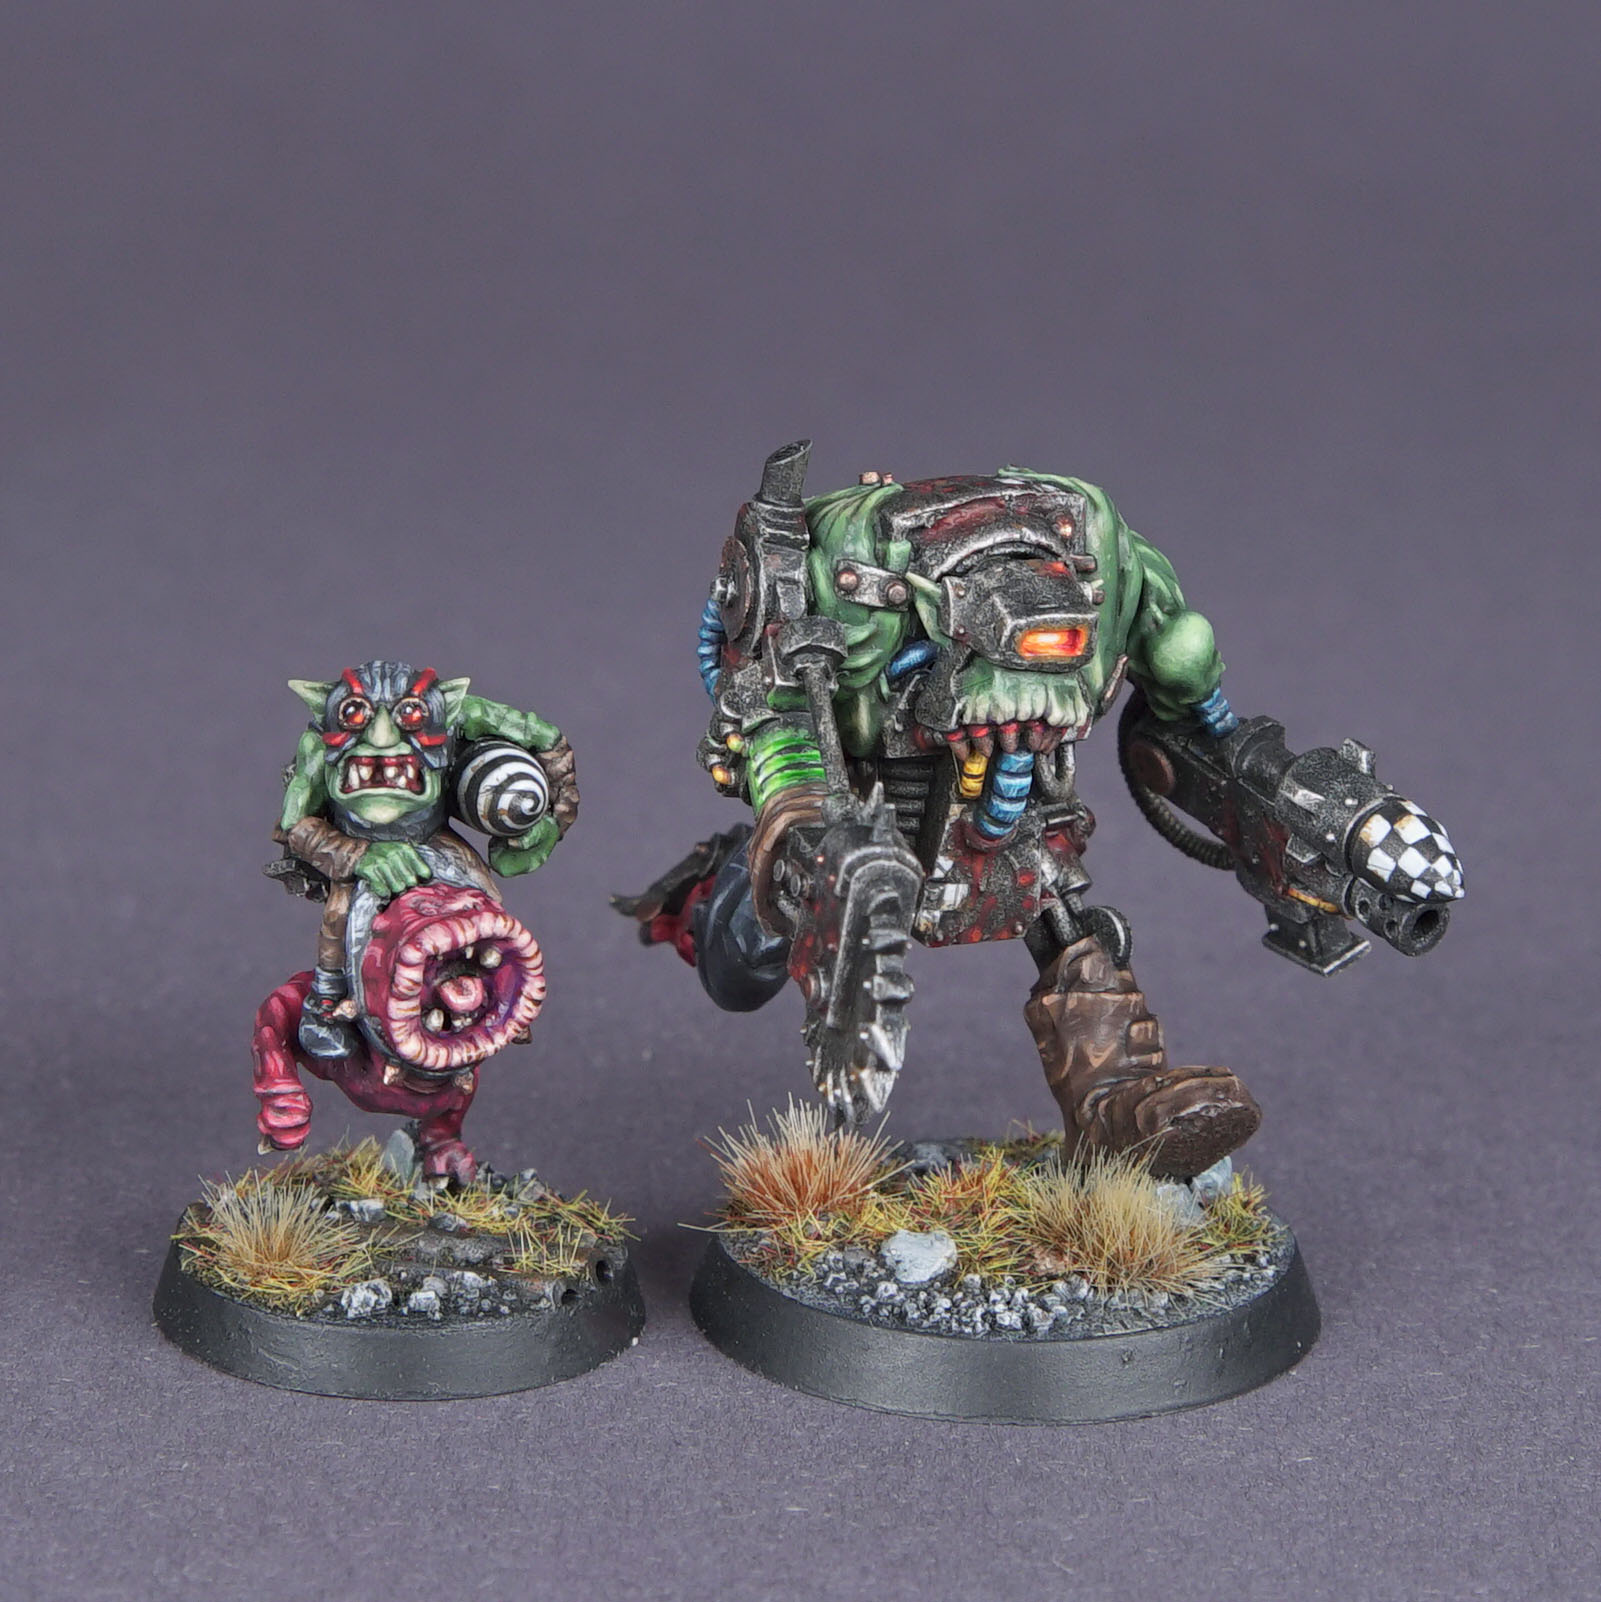 Nob with Cybork Body & Ammo Runt